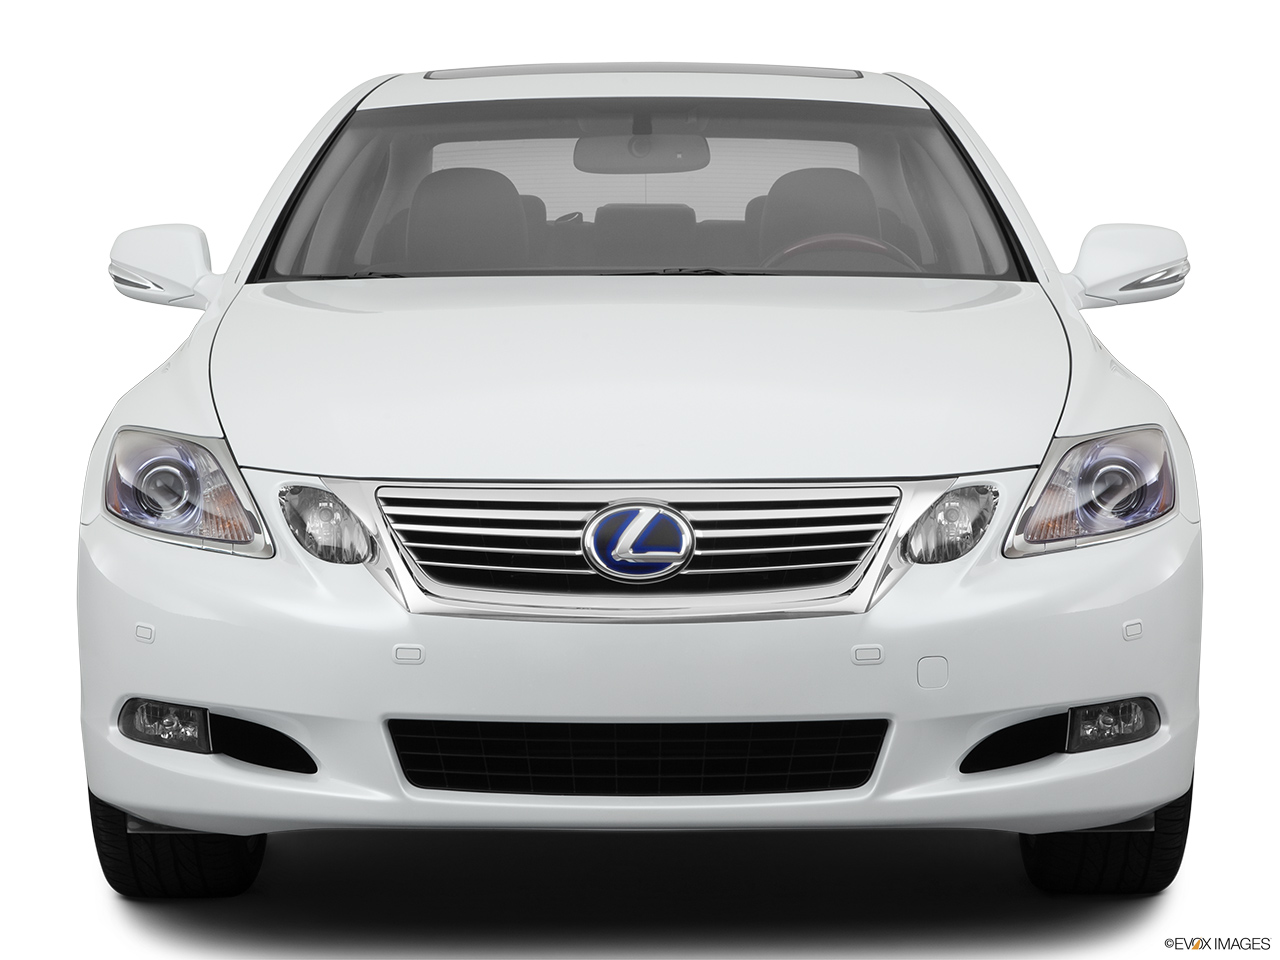 2011 Lexus GS Hybrid GS450h Low/wide front.